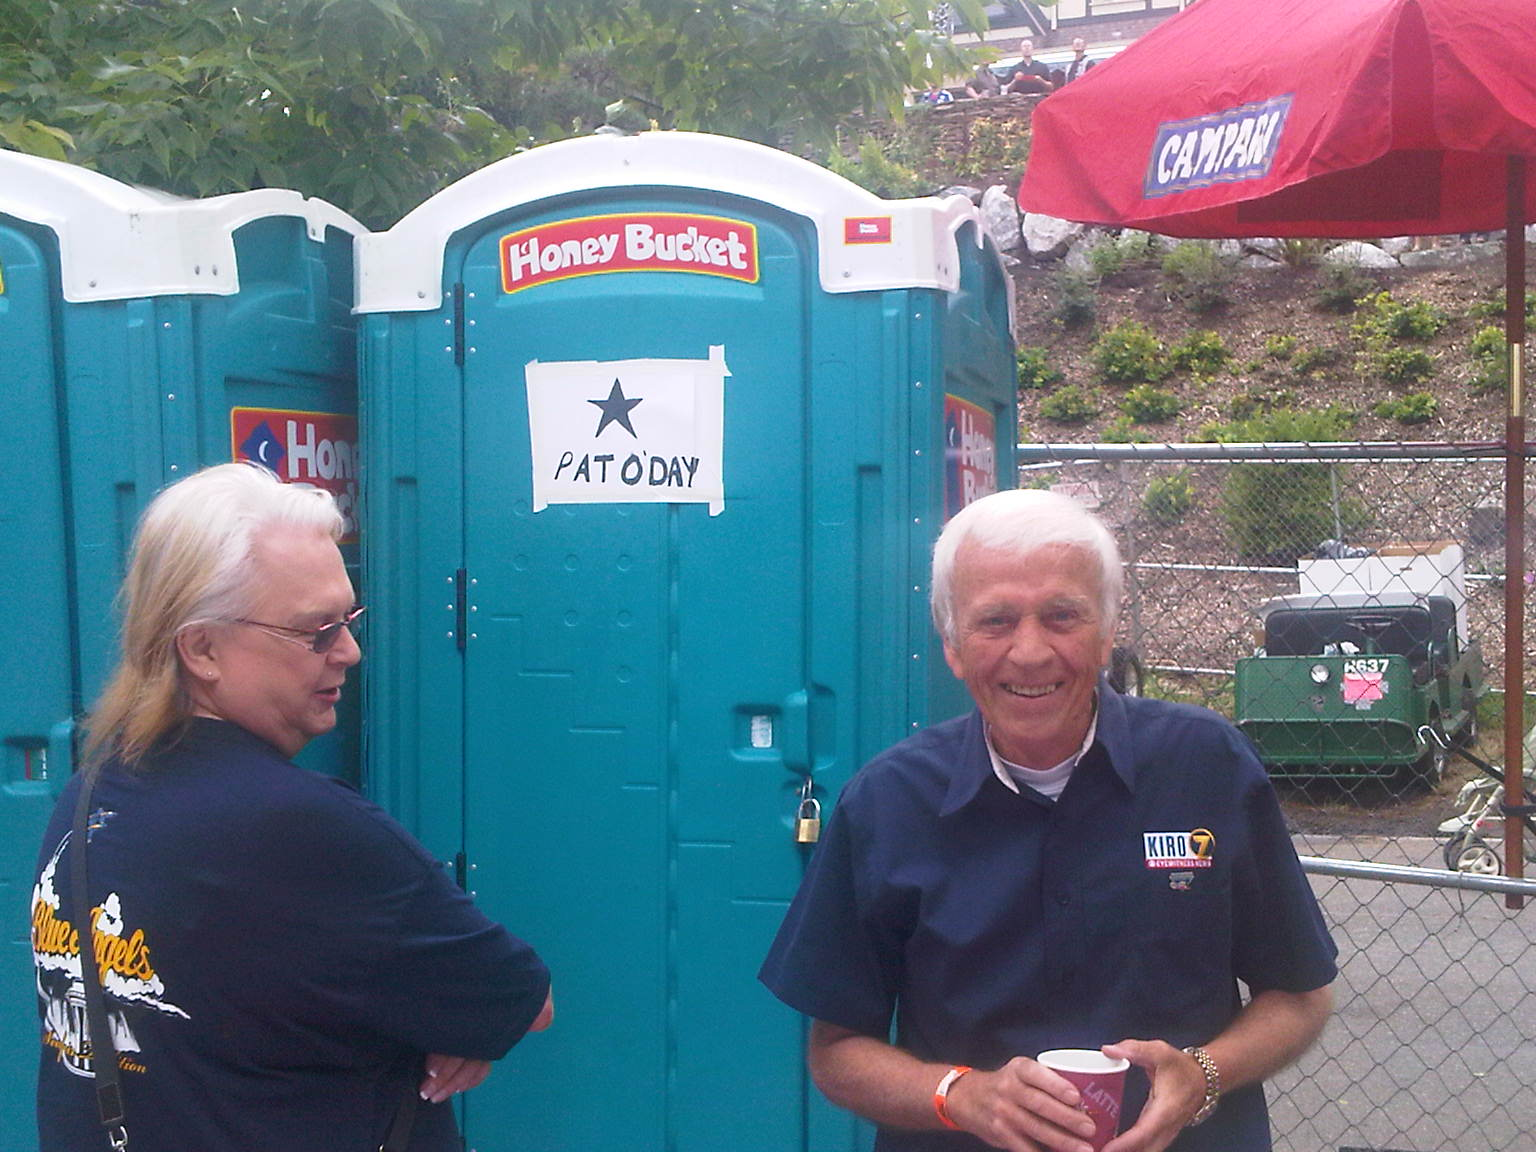 Is this the reason Pat O'Day has been removed from the KIRO TV team? His private port a potty costs too much?